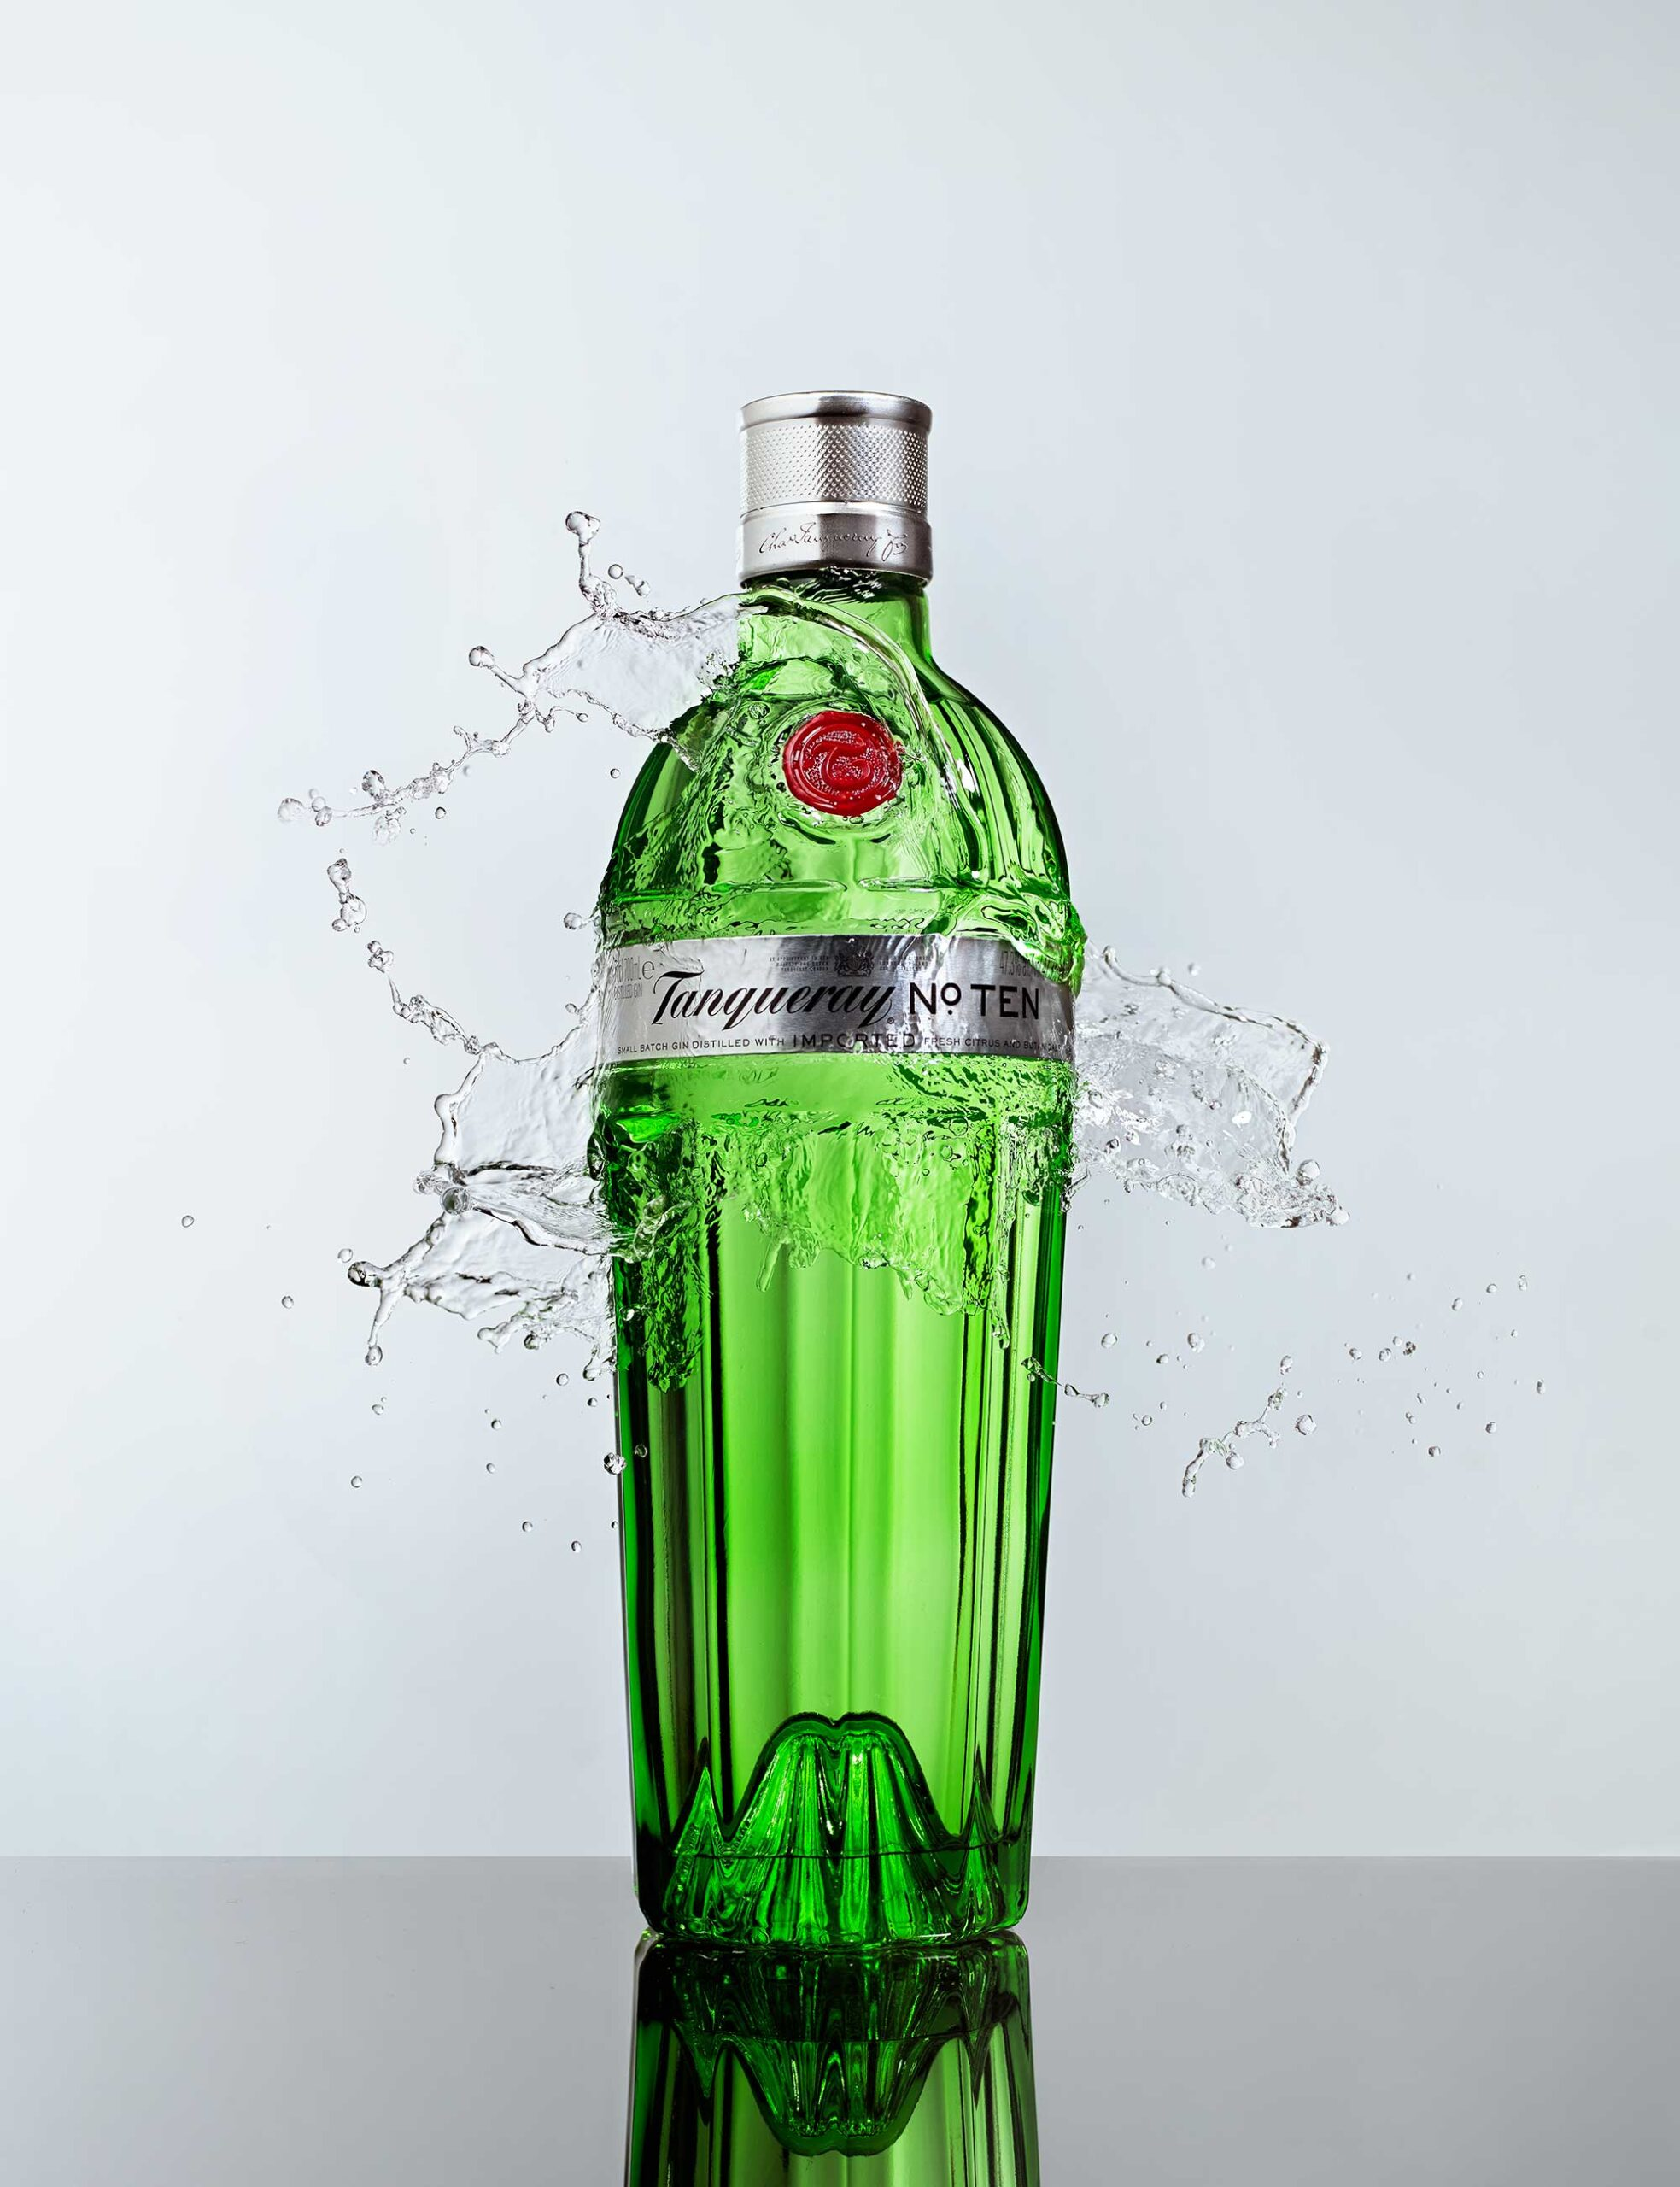 TANQUERAY HIGH QUALITY GIN shooting for the American market by Luzzitelli Danieli productions